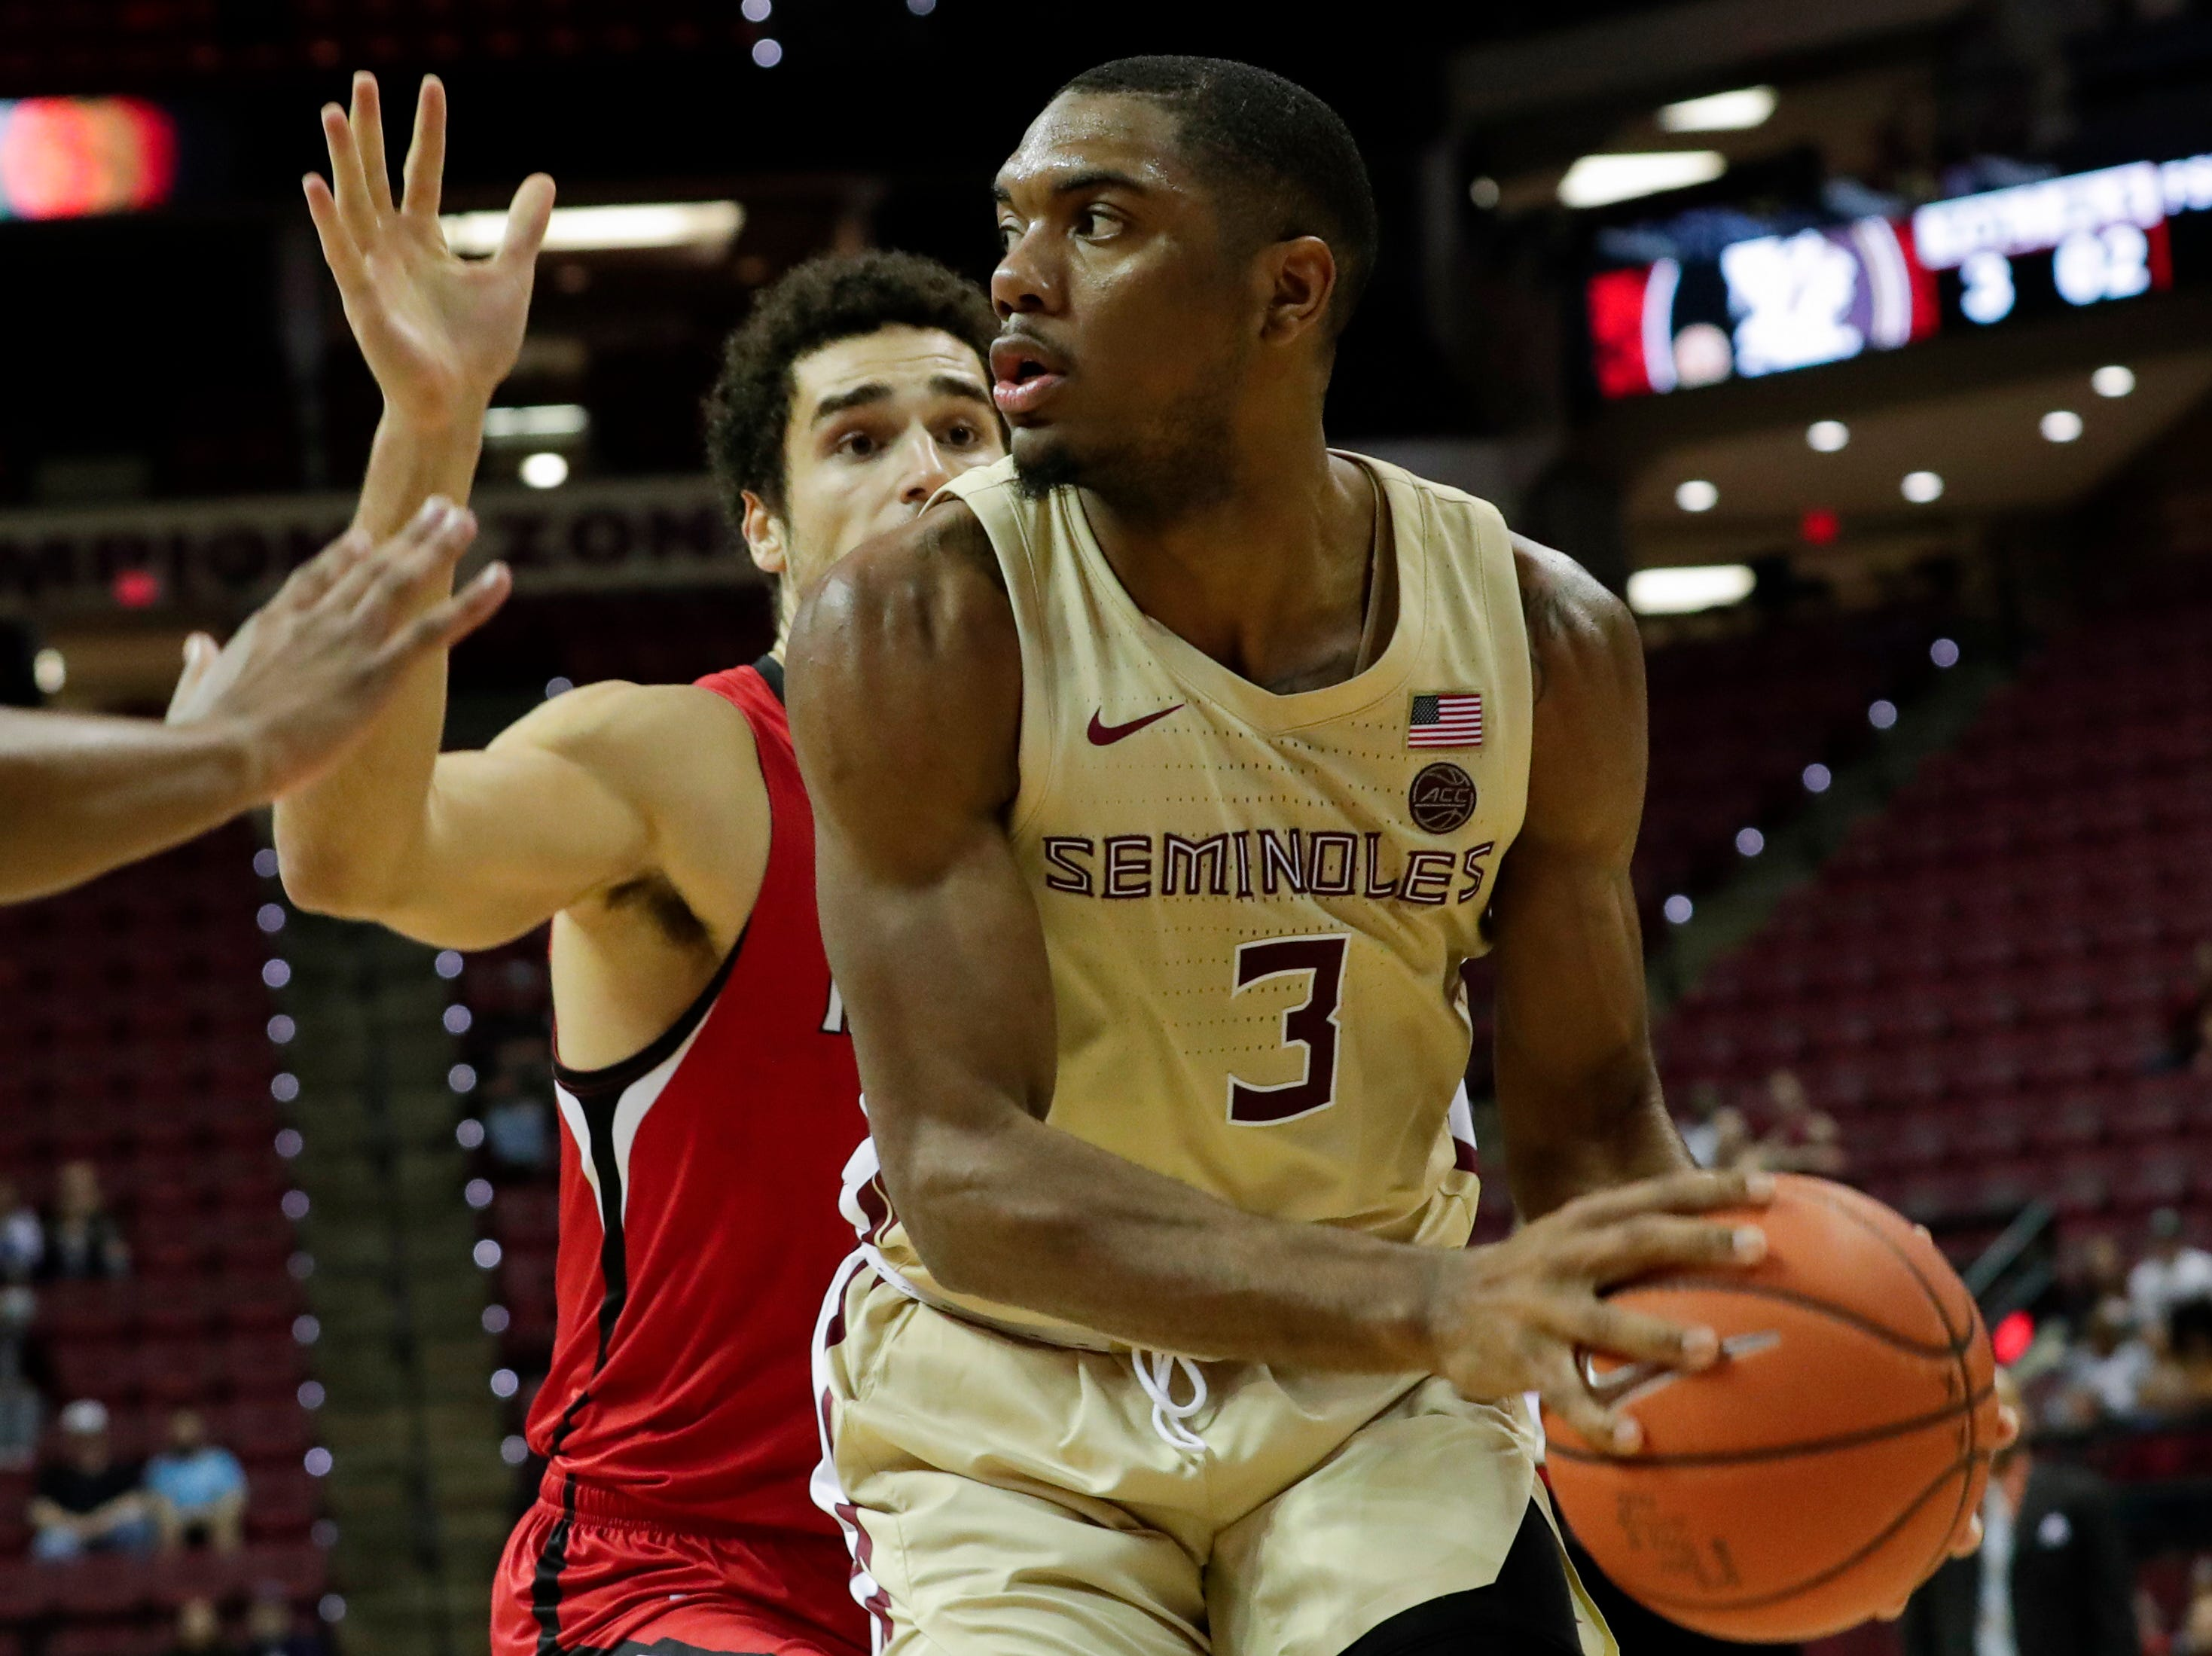 Florida State Seminoles guard Trent Forrest (3) looks for an opening during a game between Florida State University and Southeast Missouri State University at the Donald L. Tucker Civic Center Monday, Dec. 17, 2018.